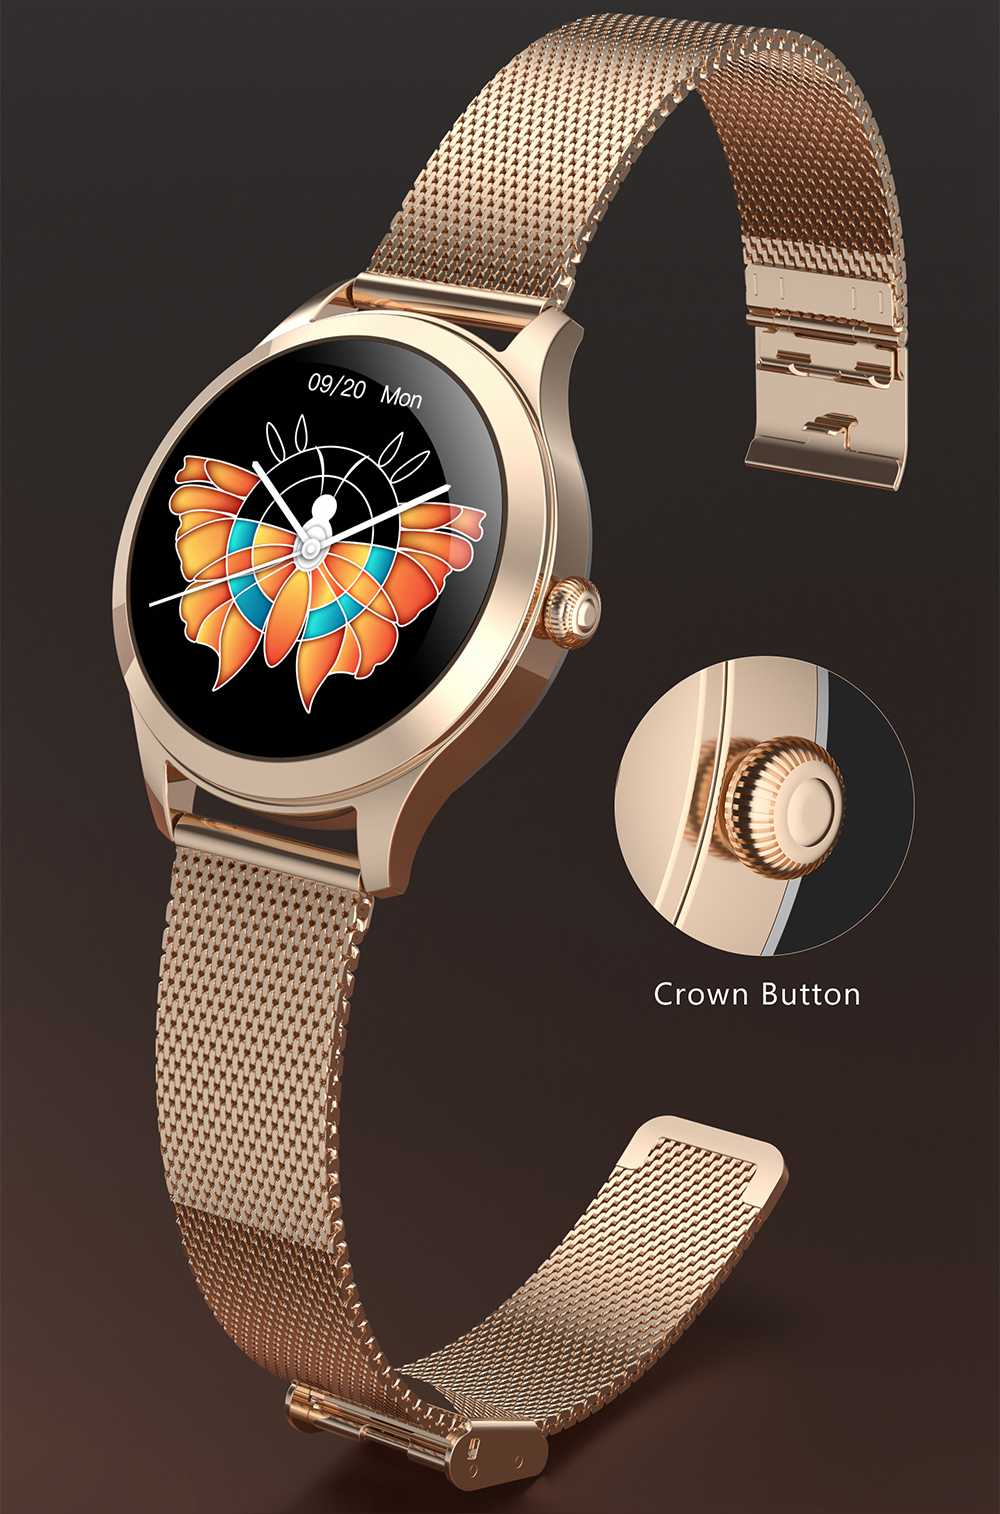 KW10 PRO Women Smartwatch 1.09 Inch Round TFT Screen IP68 Water Resistant Heart Rate Sleep Tracker APP Bluetooth Multi-language - Gold